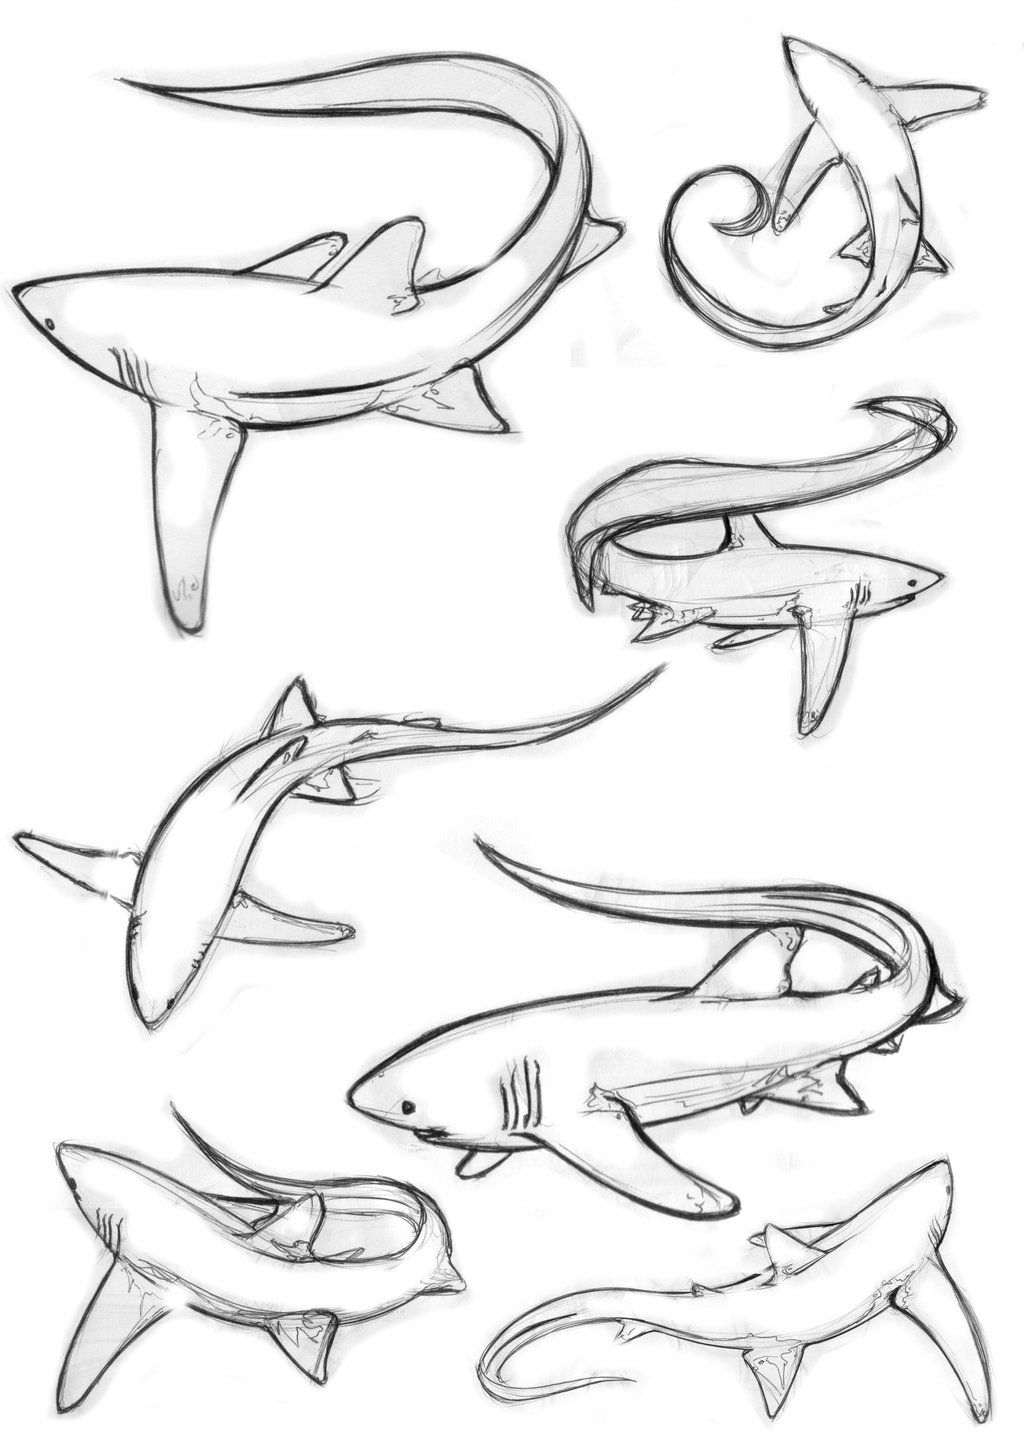 Bull Shark Coloring Pages Pictures Imagixs Kidscolorful Com Shark Coloring Pages Shark Art Shark Drawing